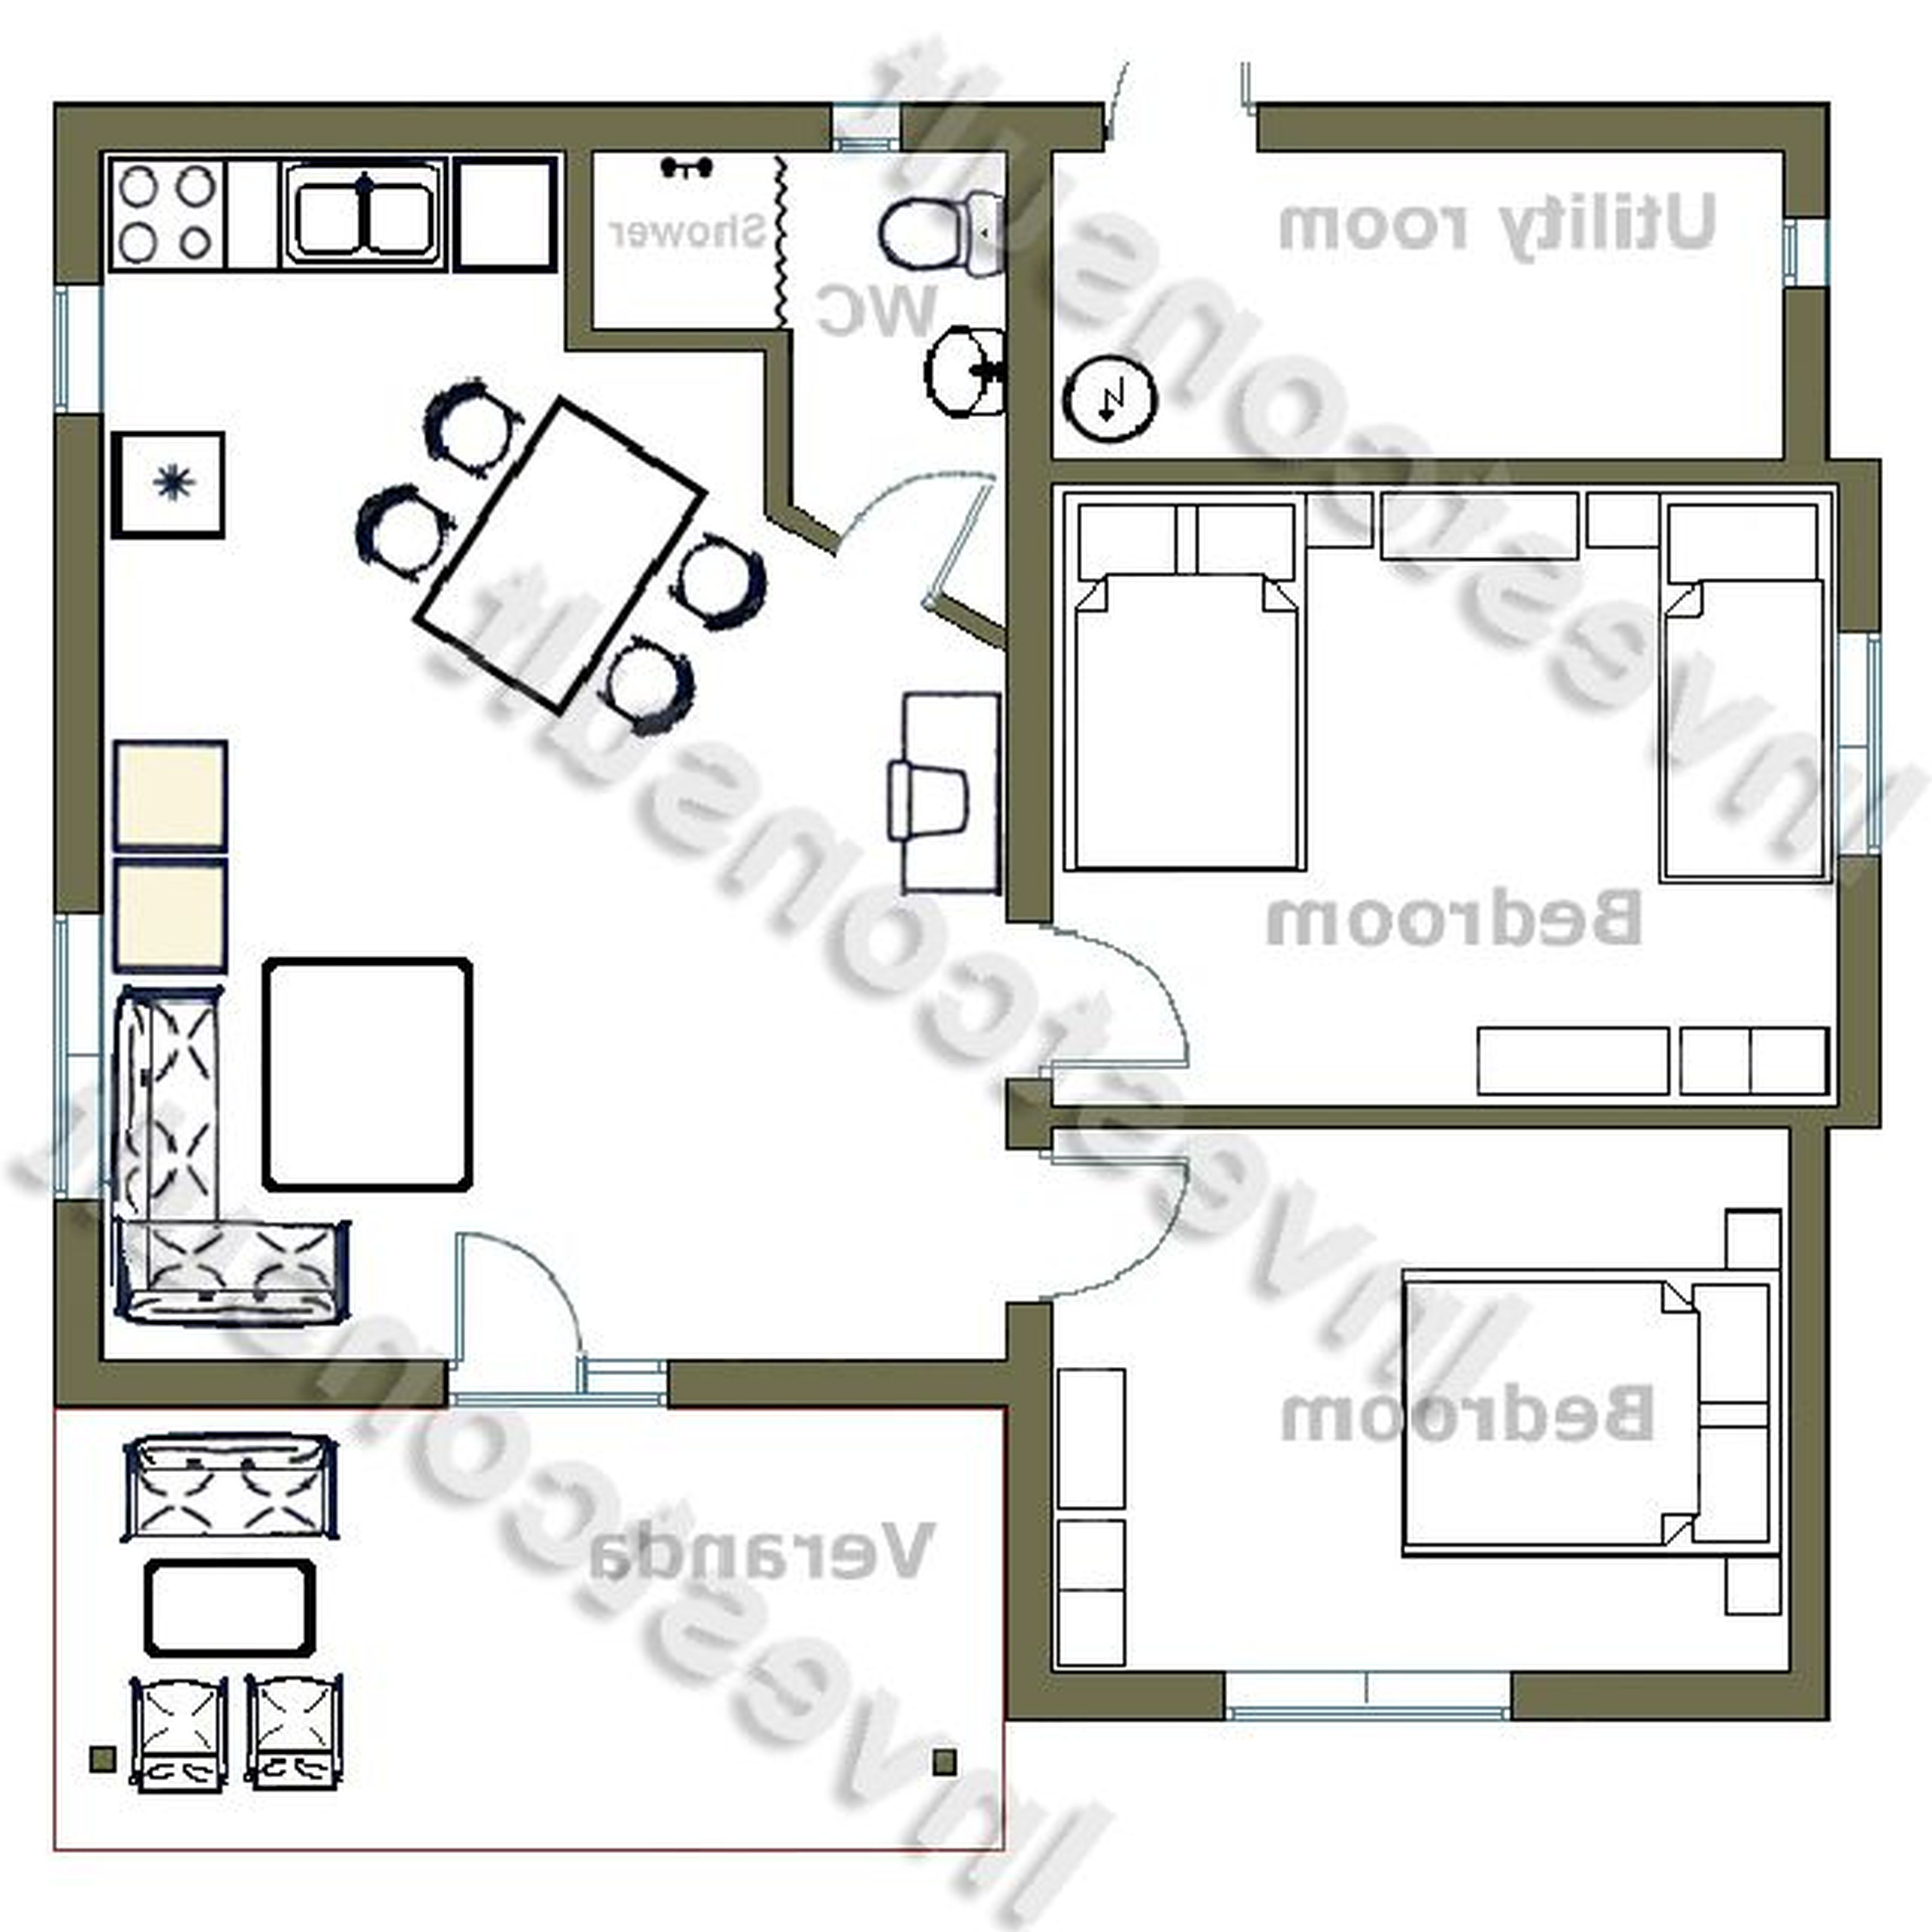 Small house projects uk House plans and ideas Pinterest